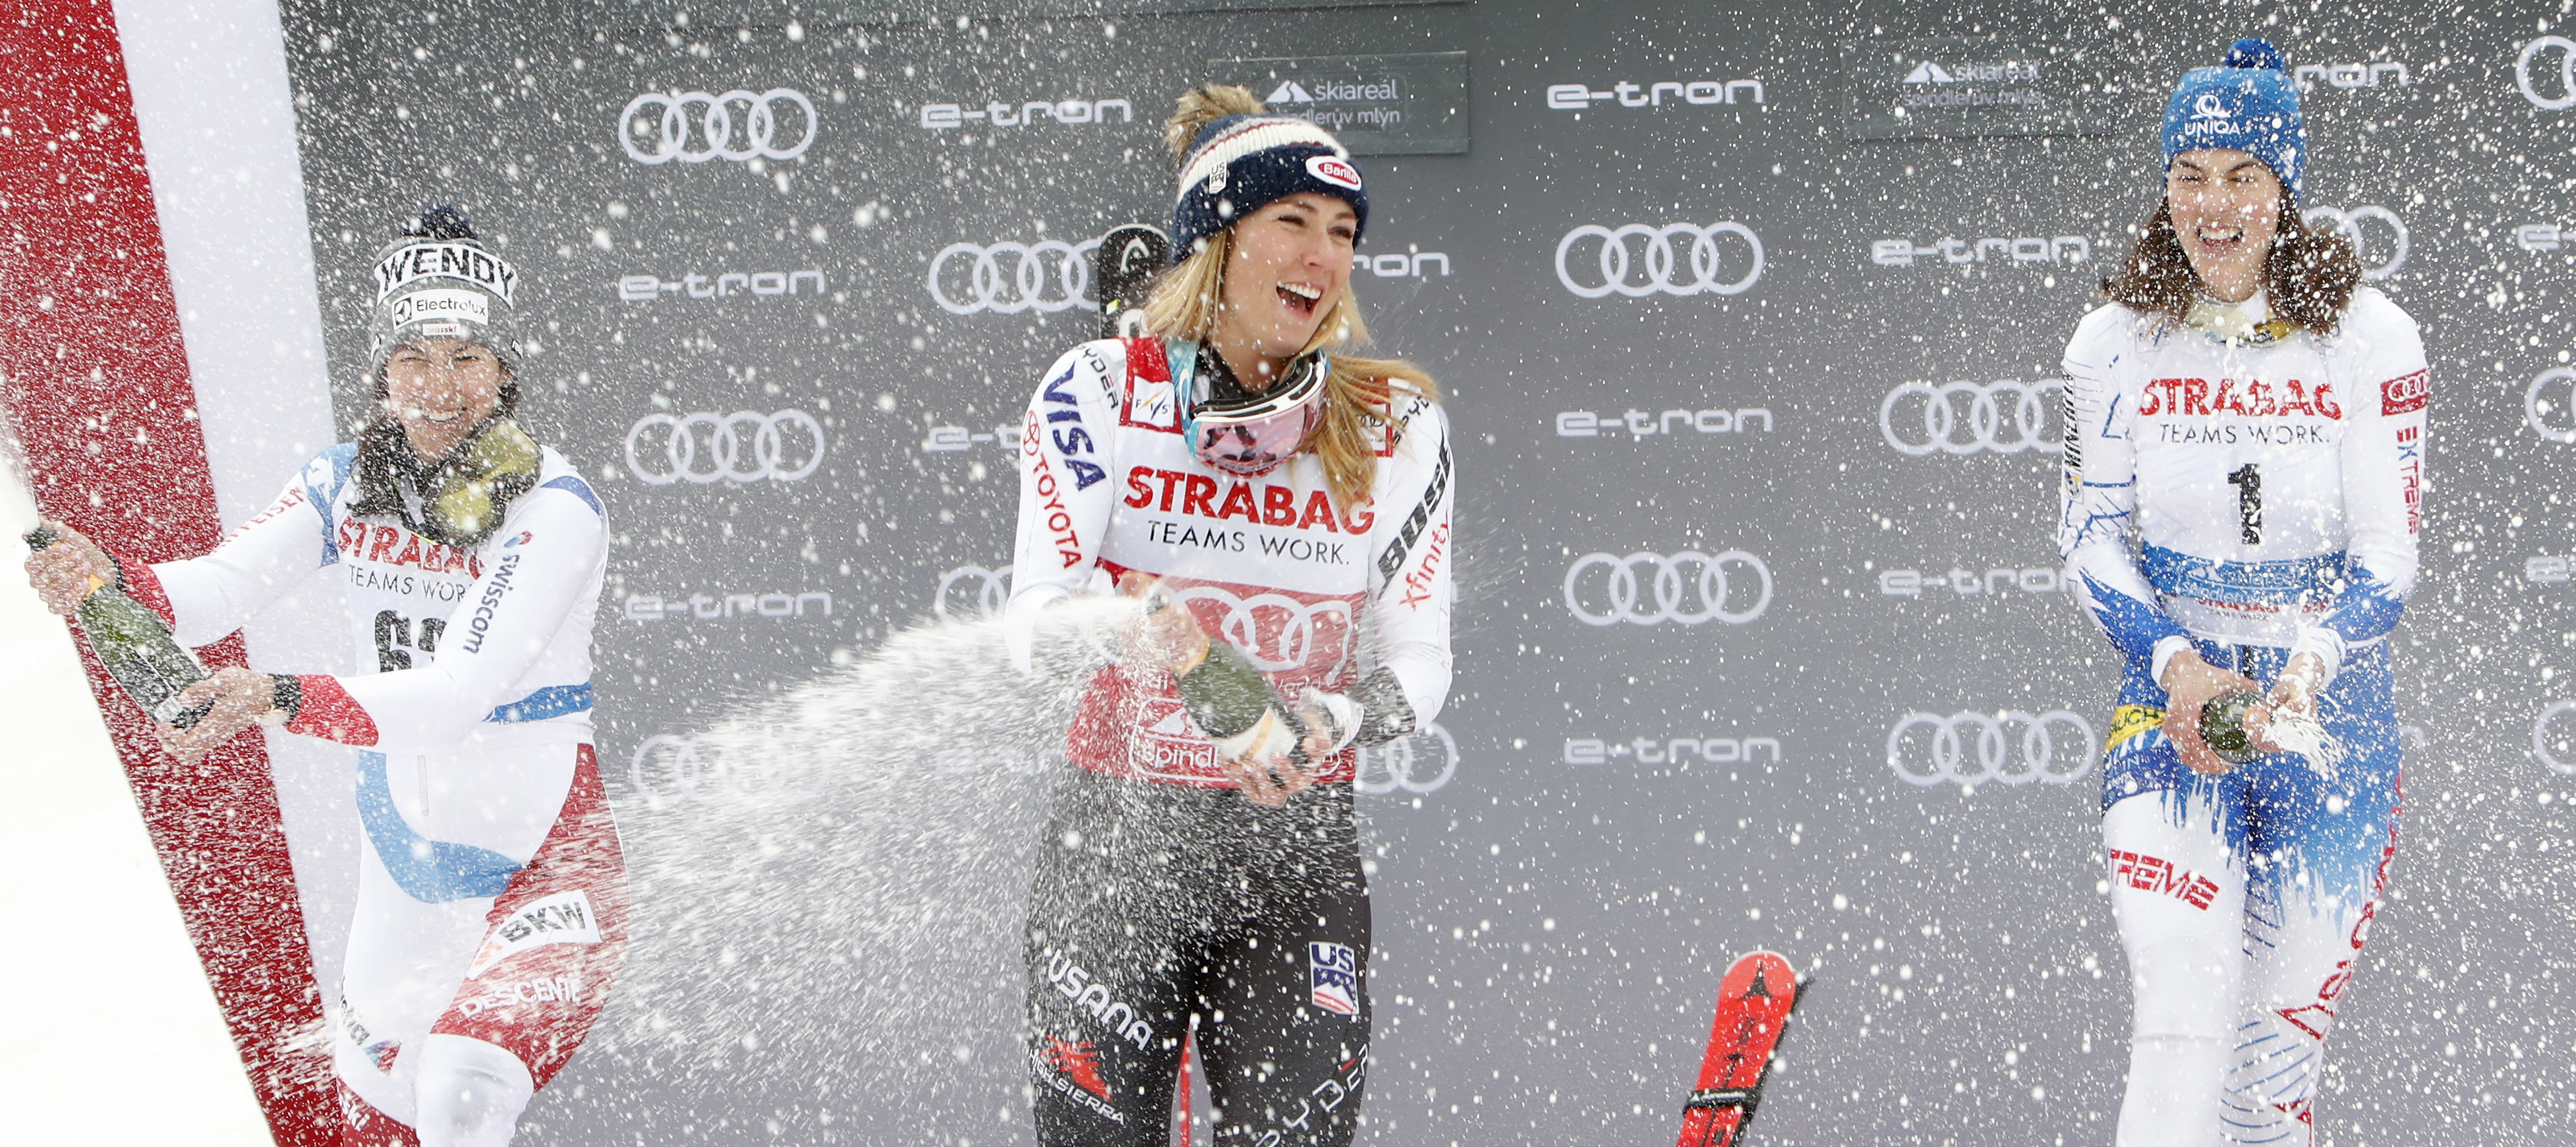 Mikaela Shiffrin Goes for Two More Globes